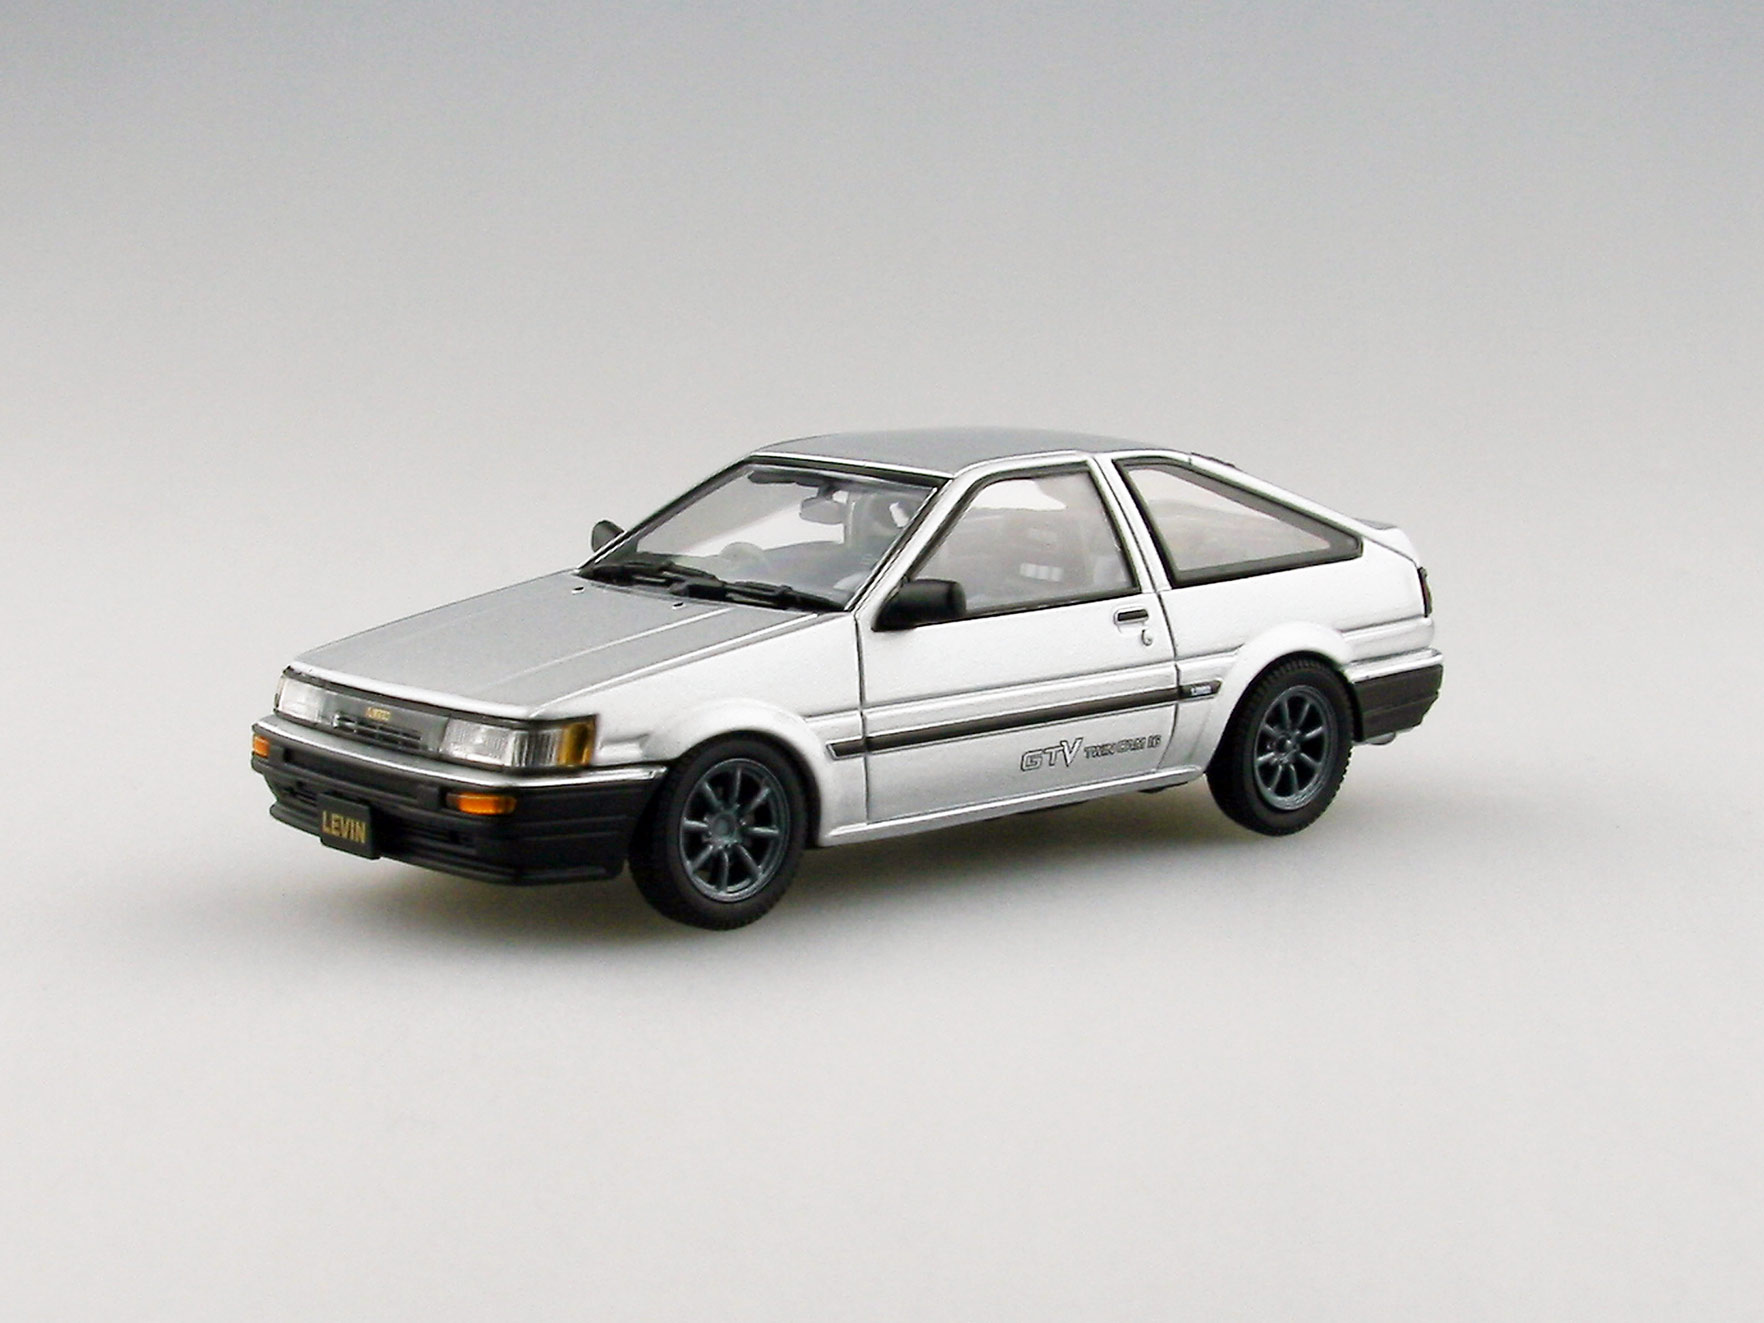 【45186】TOYOTA COROLLA LEVIN 1600GTV with alloy wheel (SILVER)